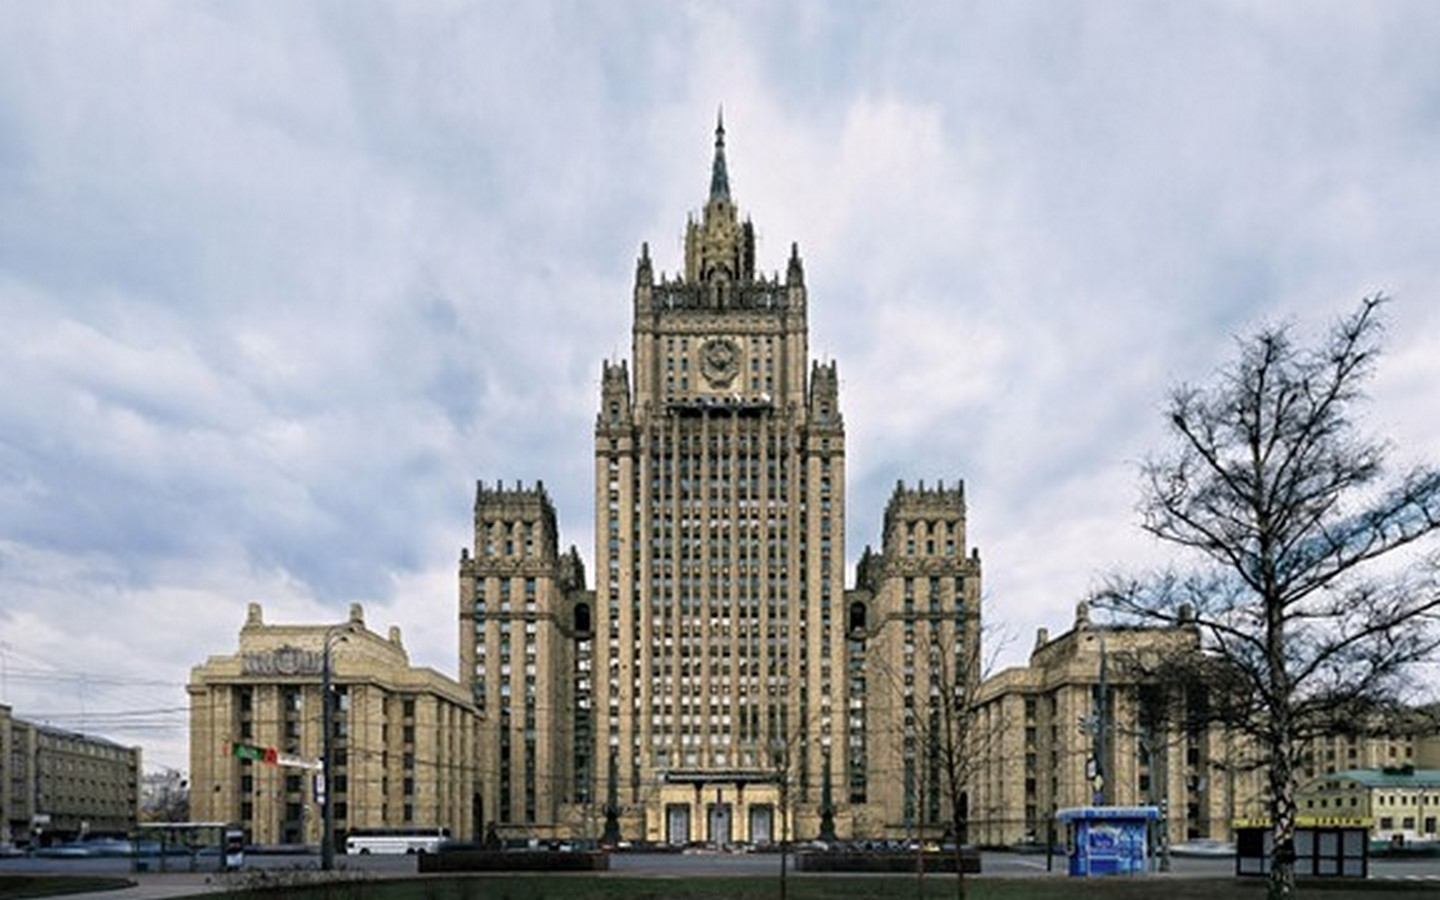 10 Things you did not know about the Stalinist architecture - Sheet6